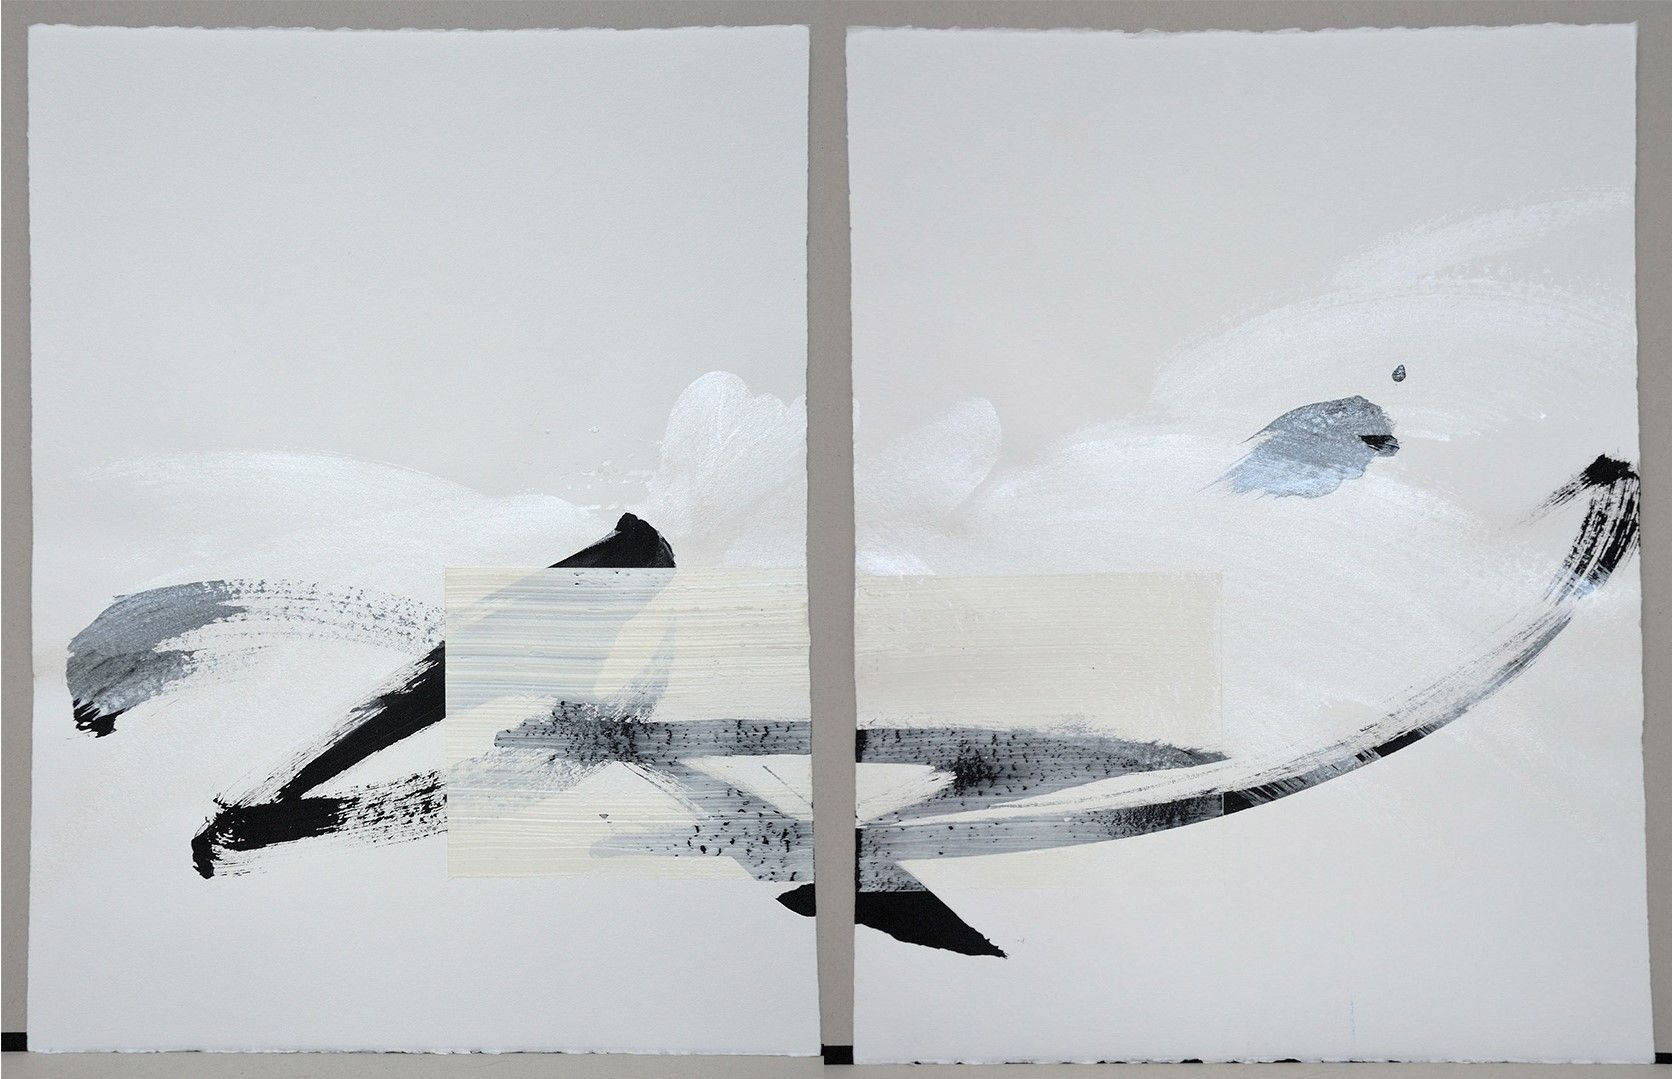 Permanescence N553-D - Hachiro Kanno - Contemporary painting